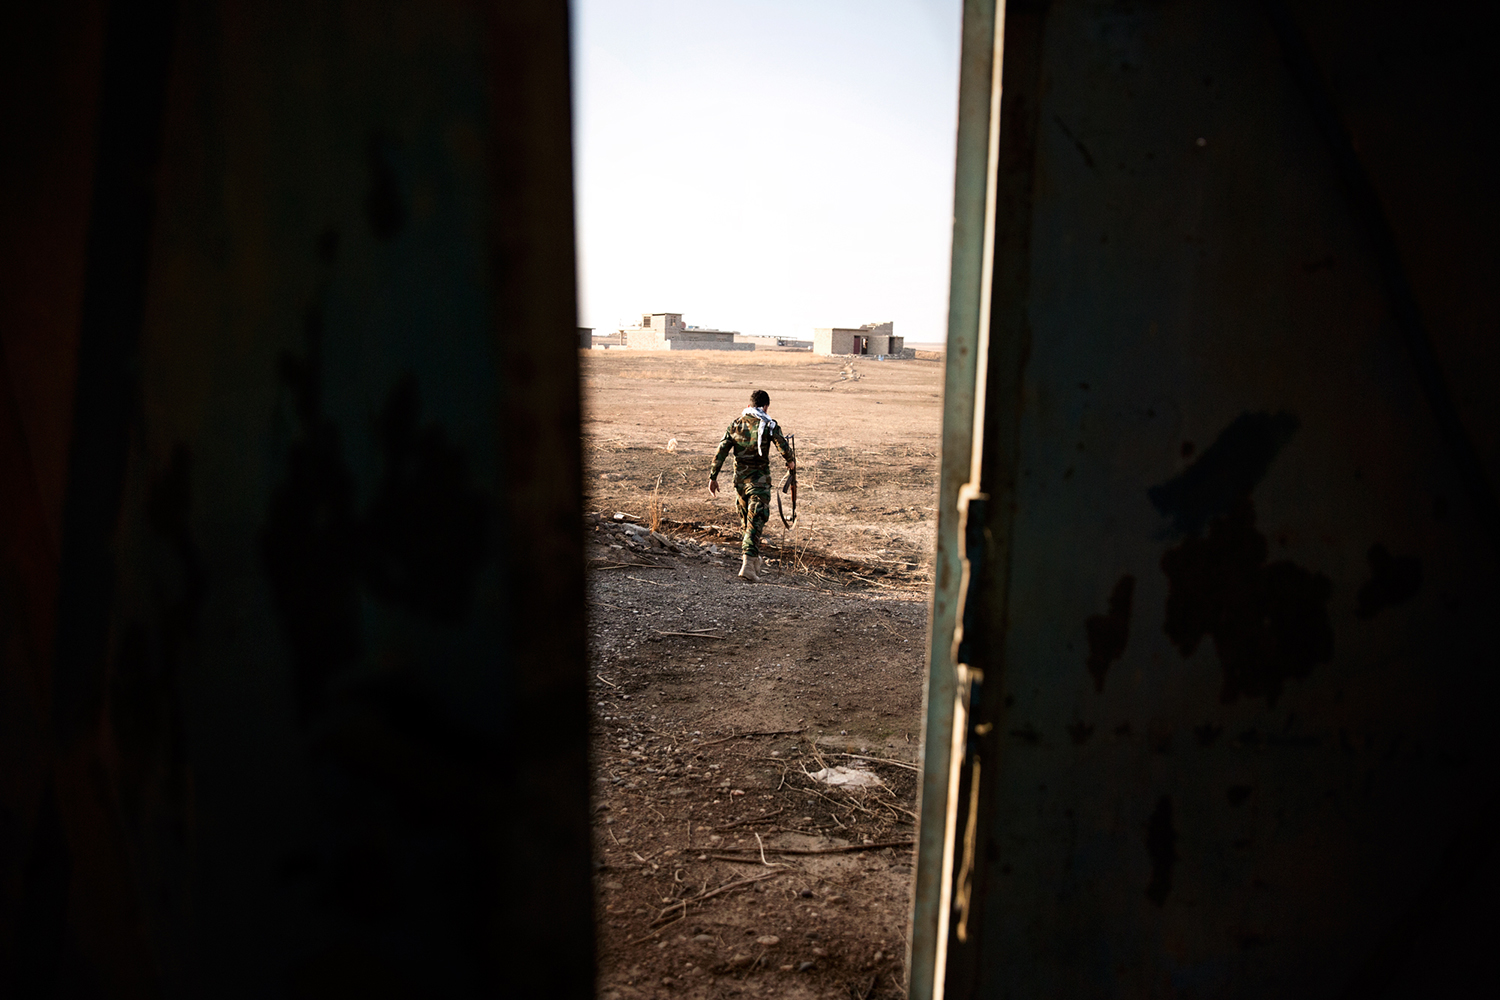 Peshmerga soldier walking in Kurdistan, Iraq.